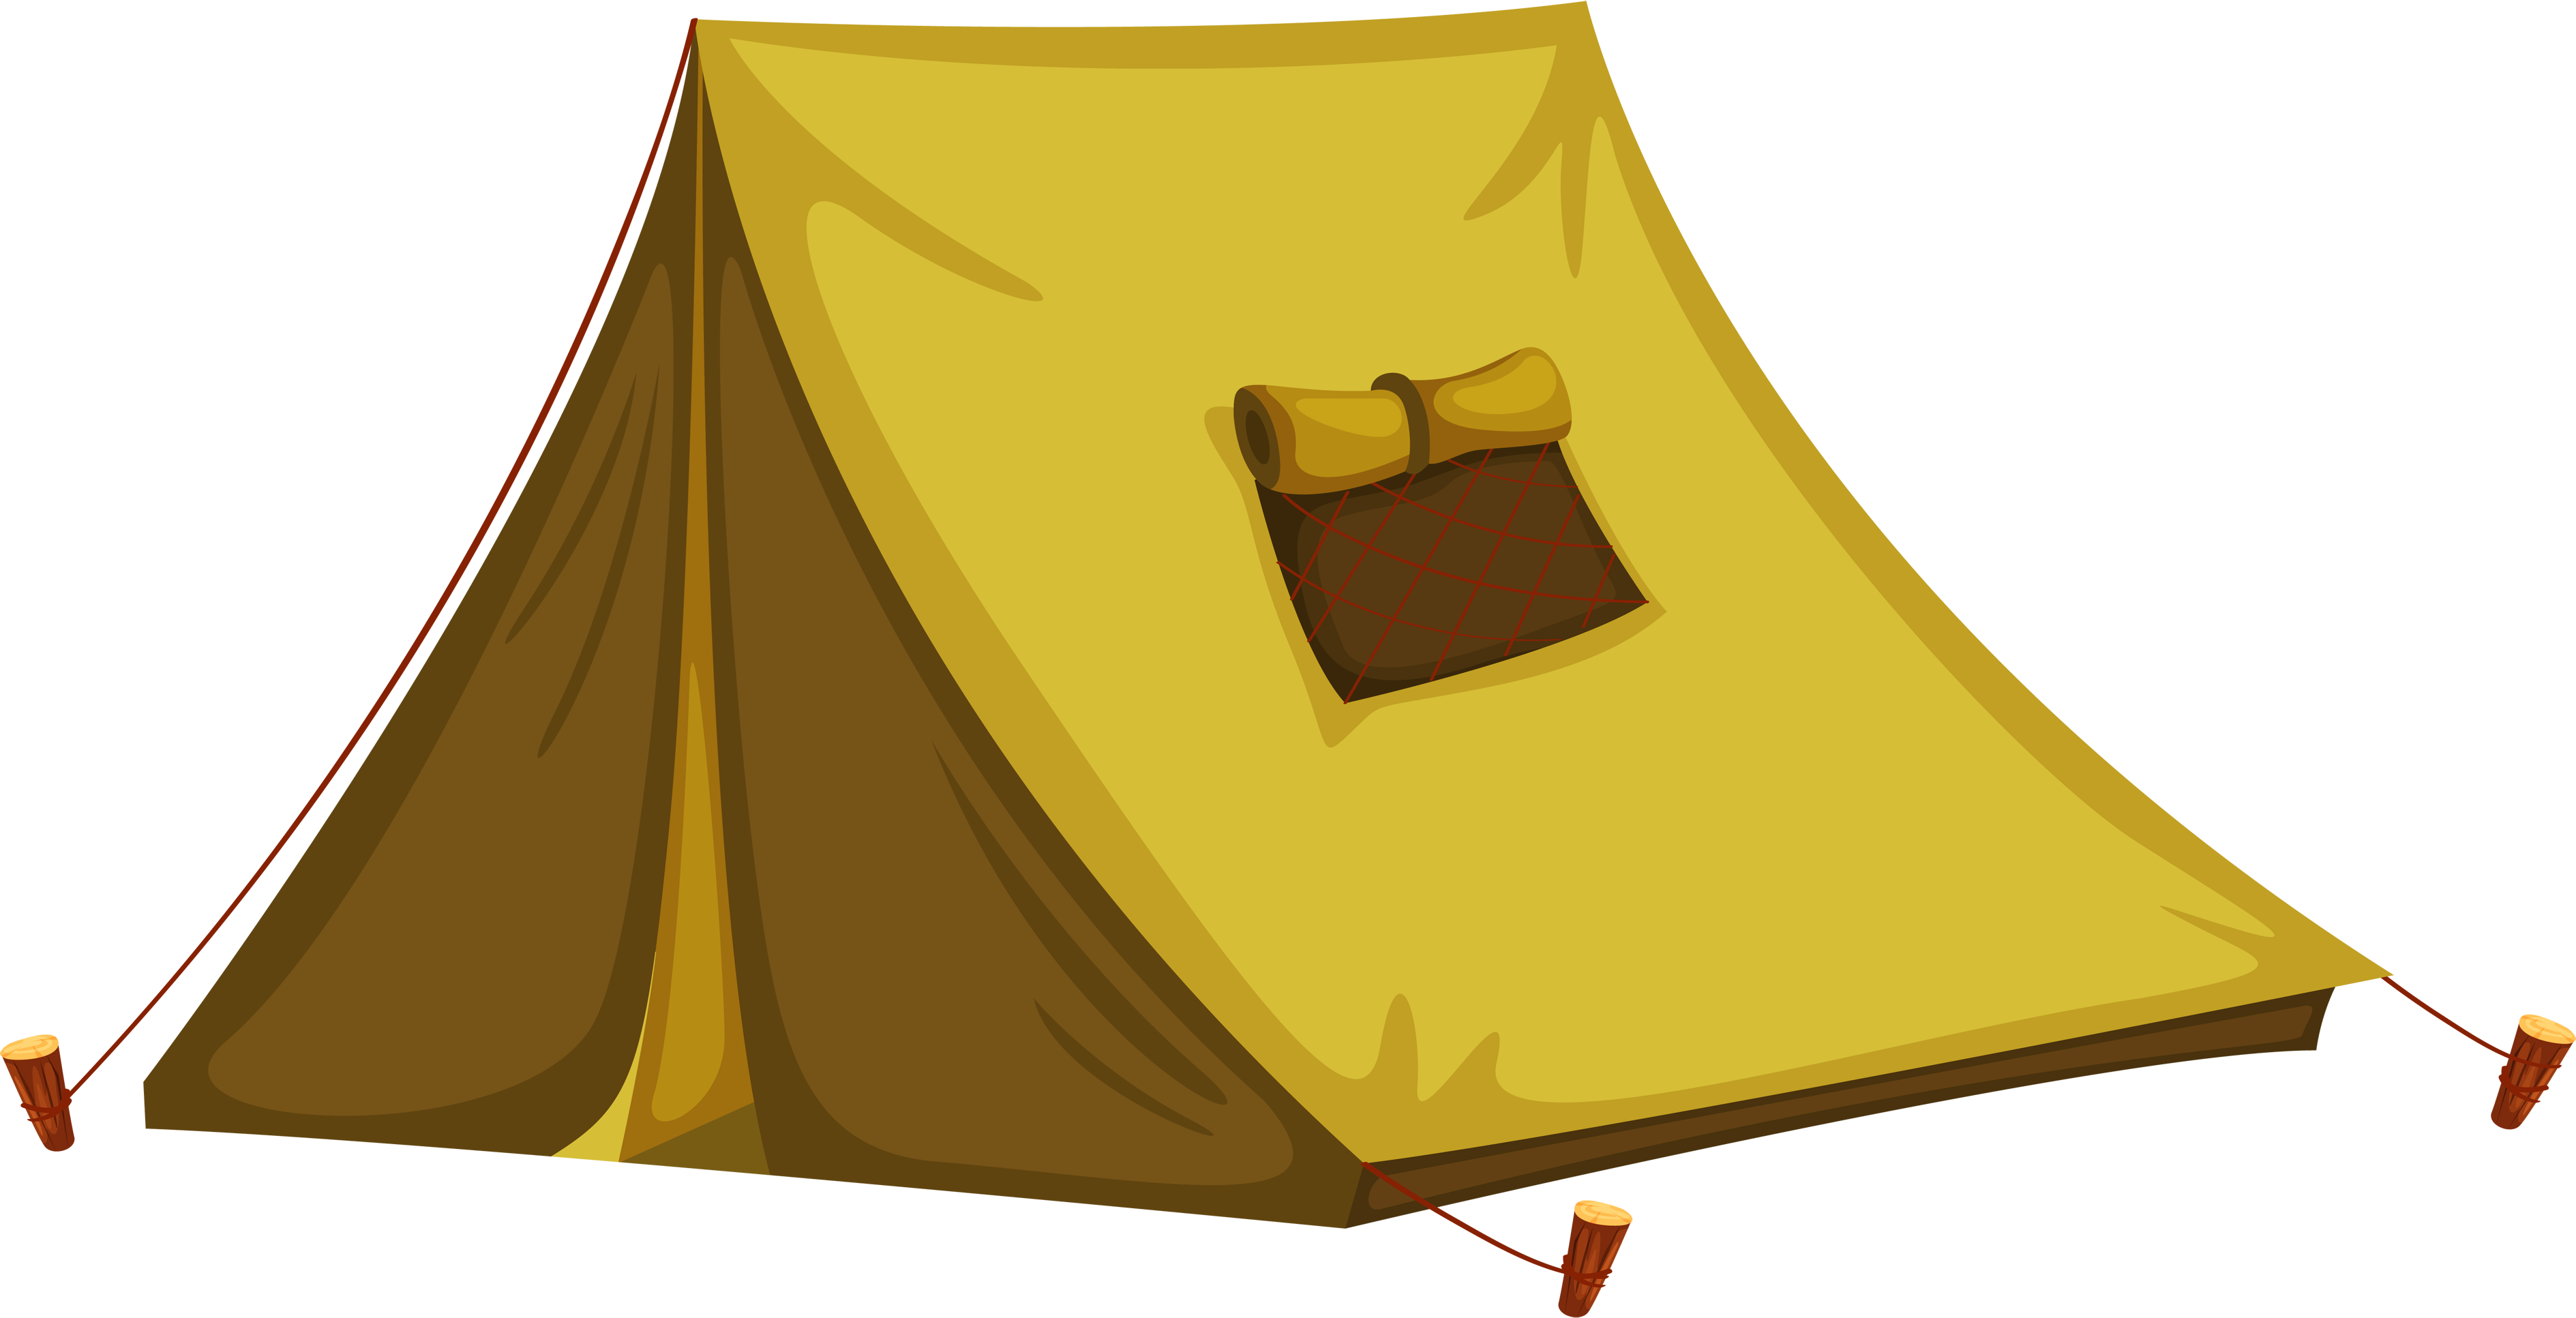 camp vector shelter